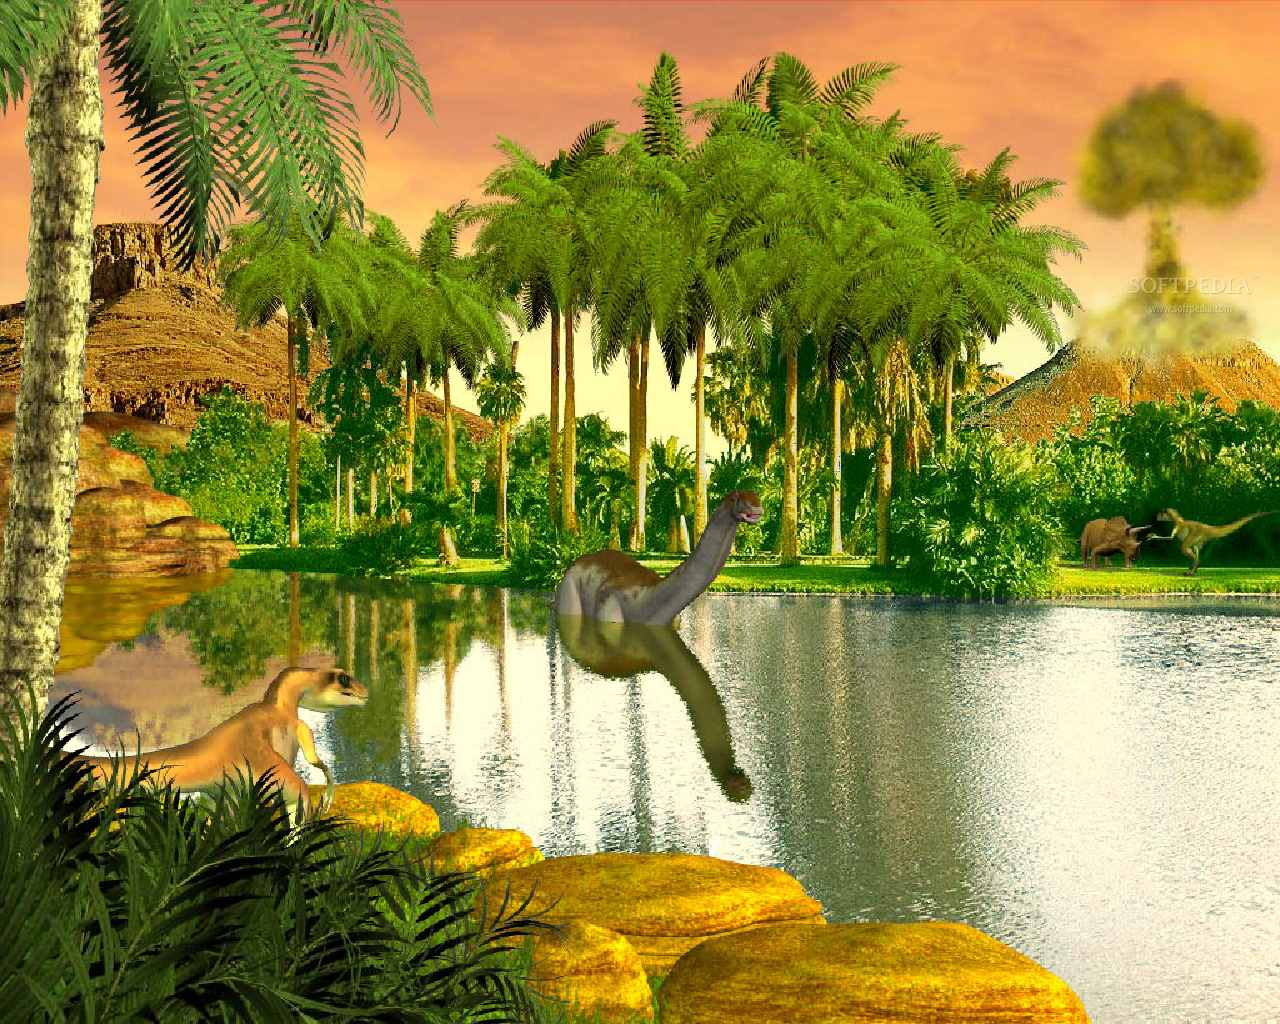 Dinosaur Valley  Animated Wallpaper  This is the image that will be